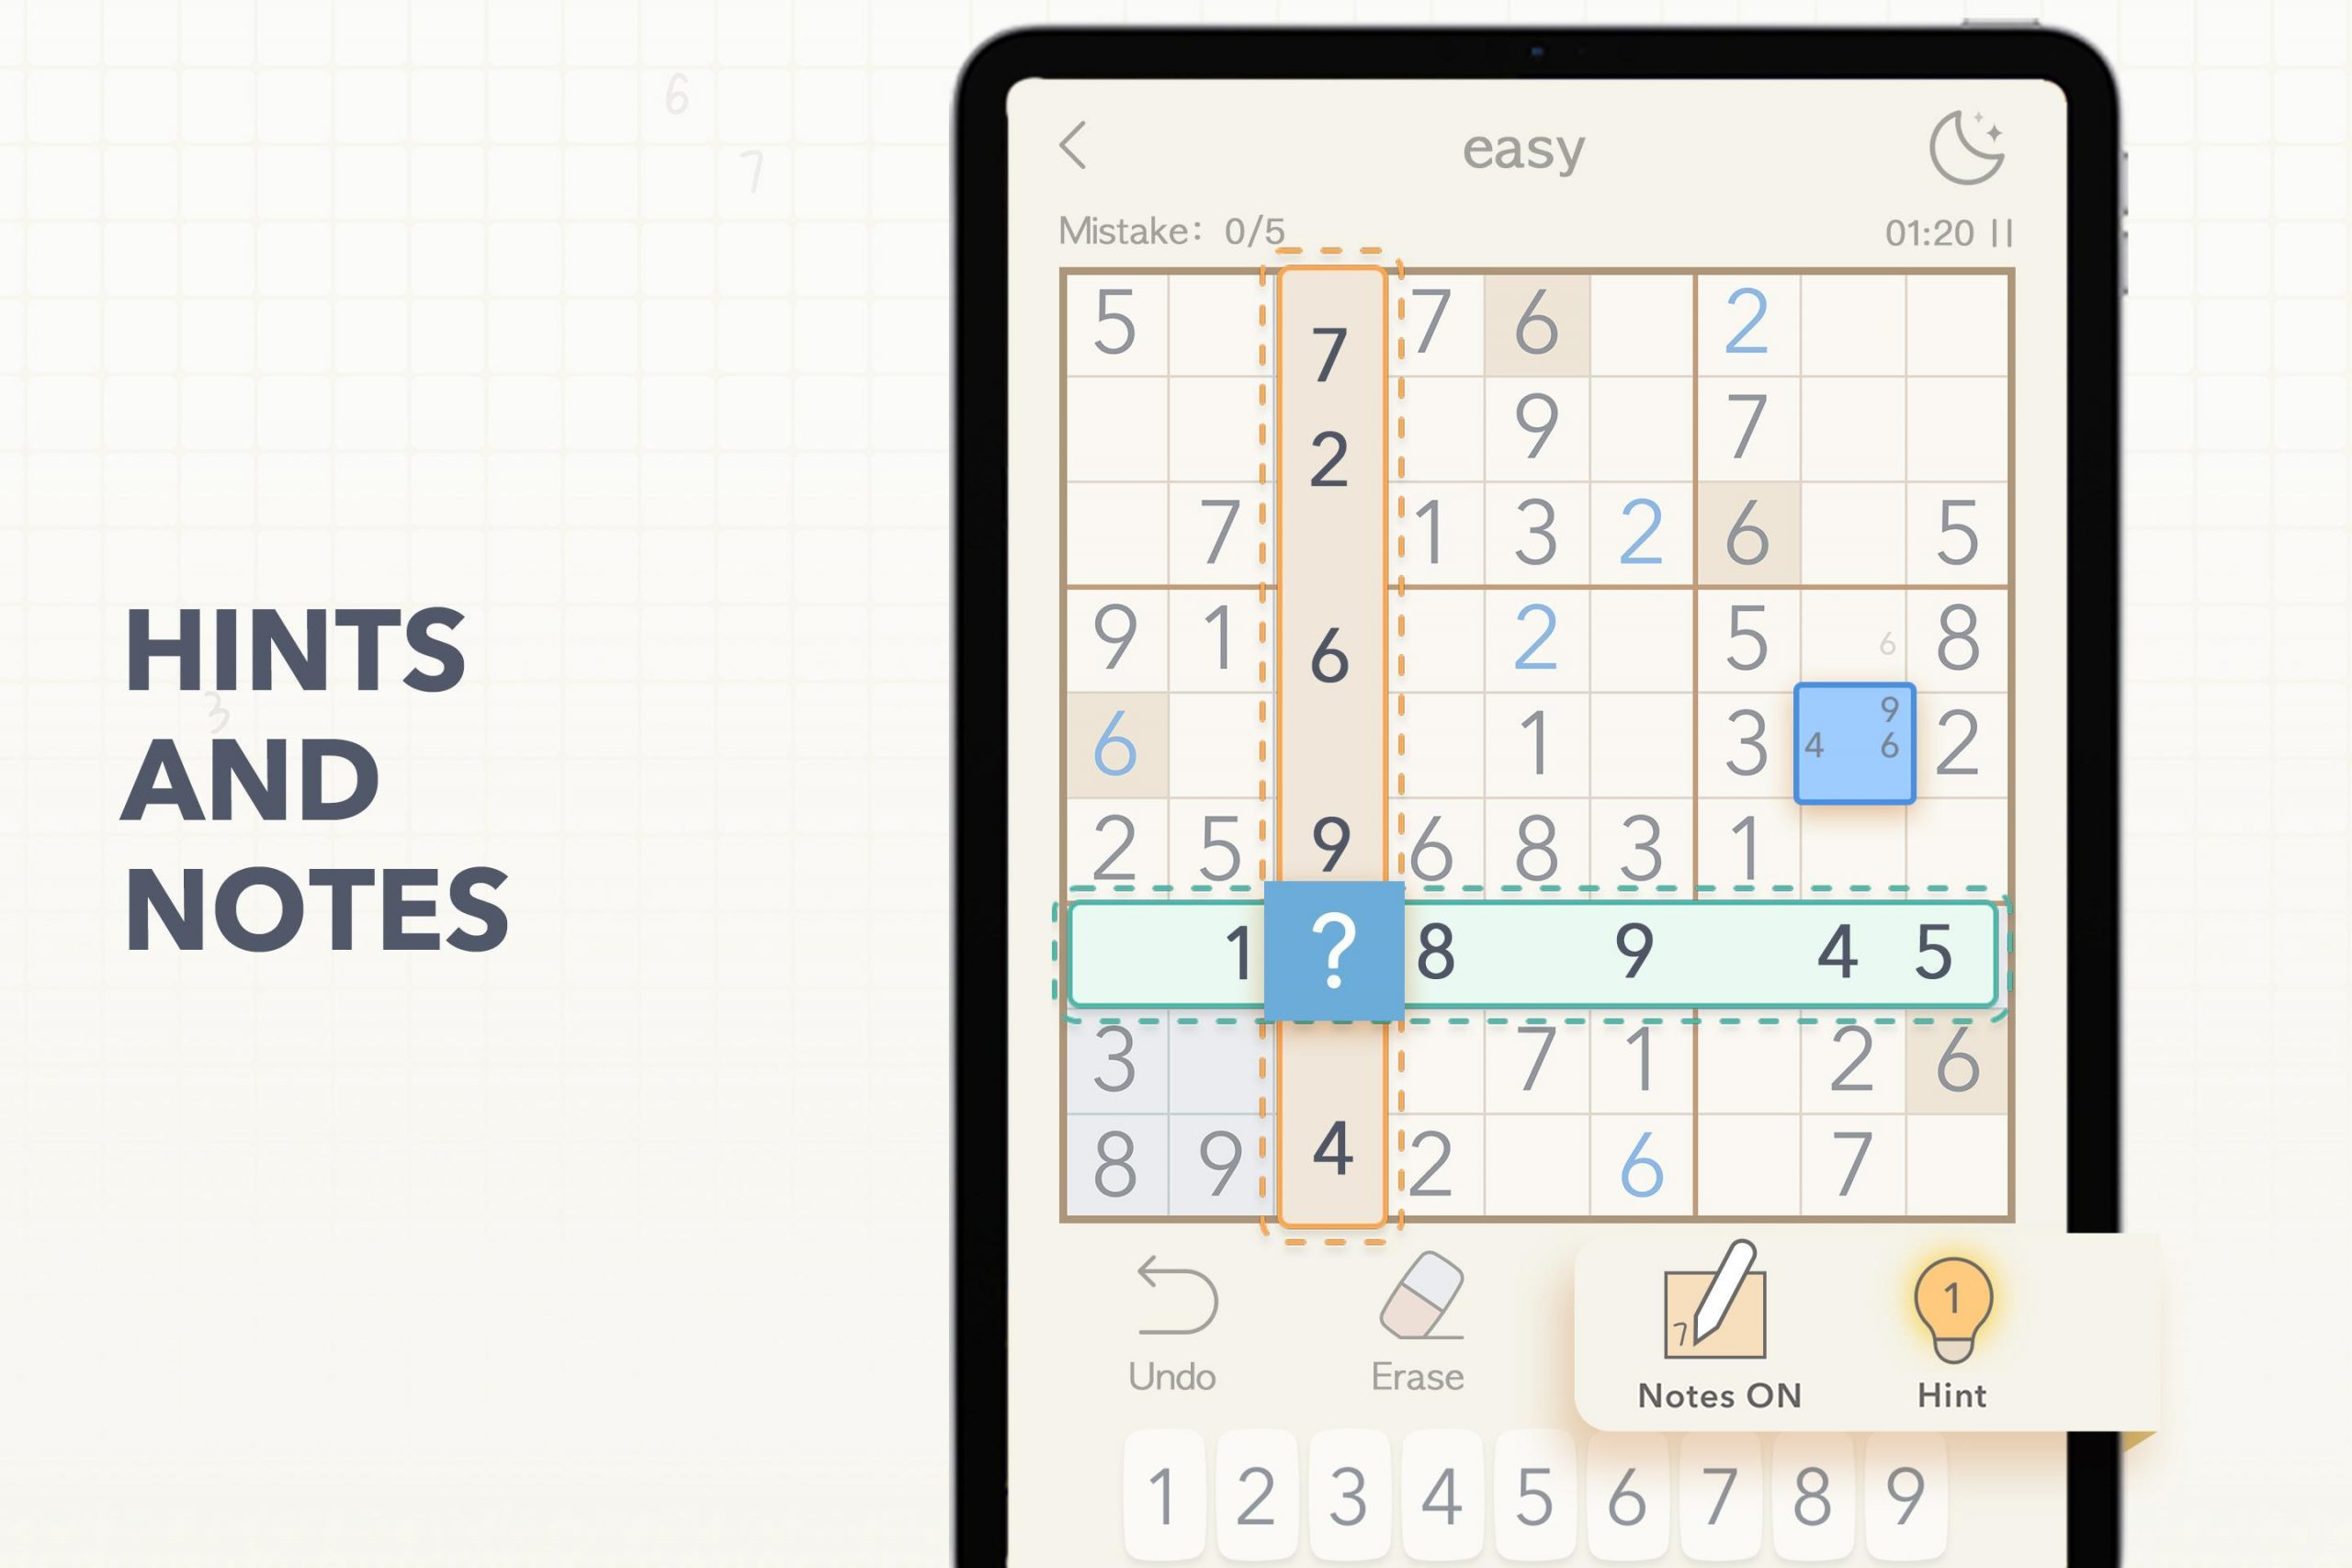 Happy Sudoku - Free Classic Daily Sudoku Puzzles For Android